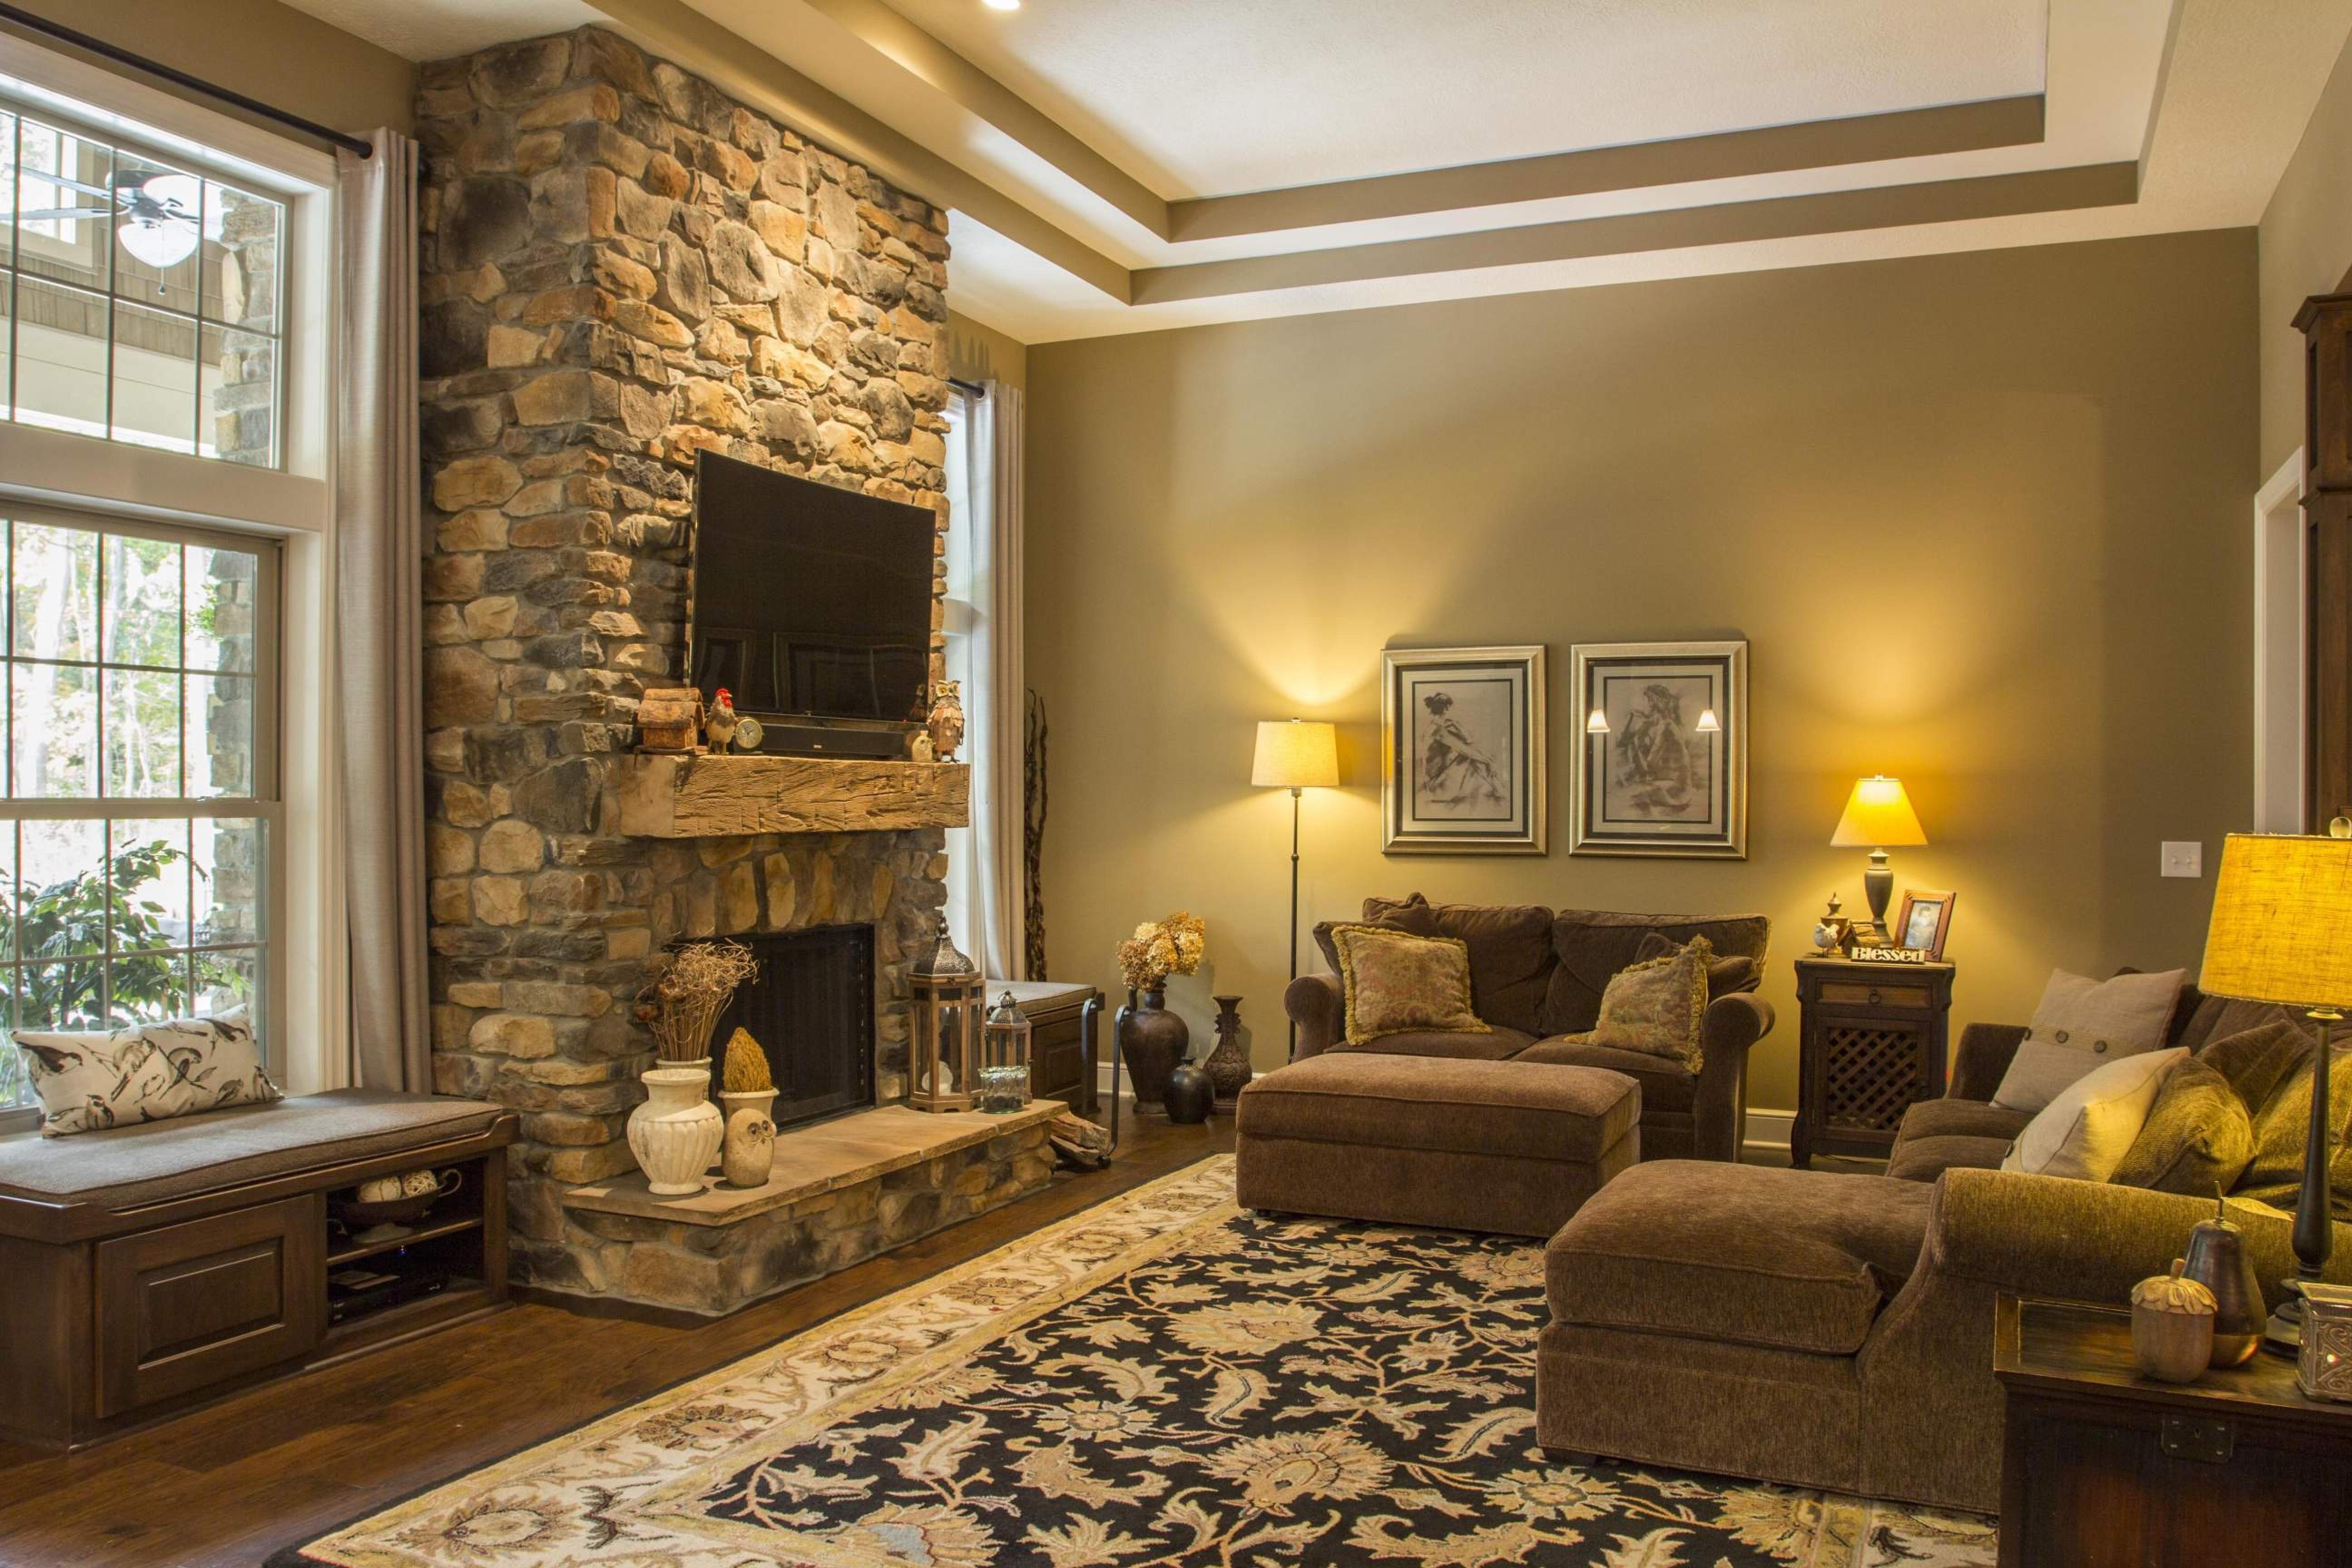 Living Area featured in the Cleveland C1 By Classic Homes in Akron, OH